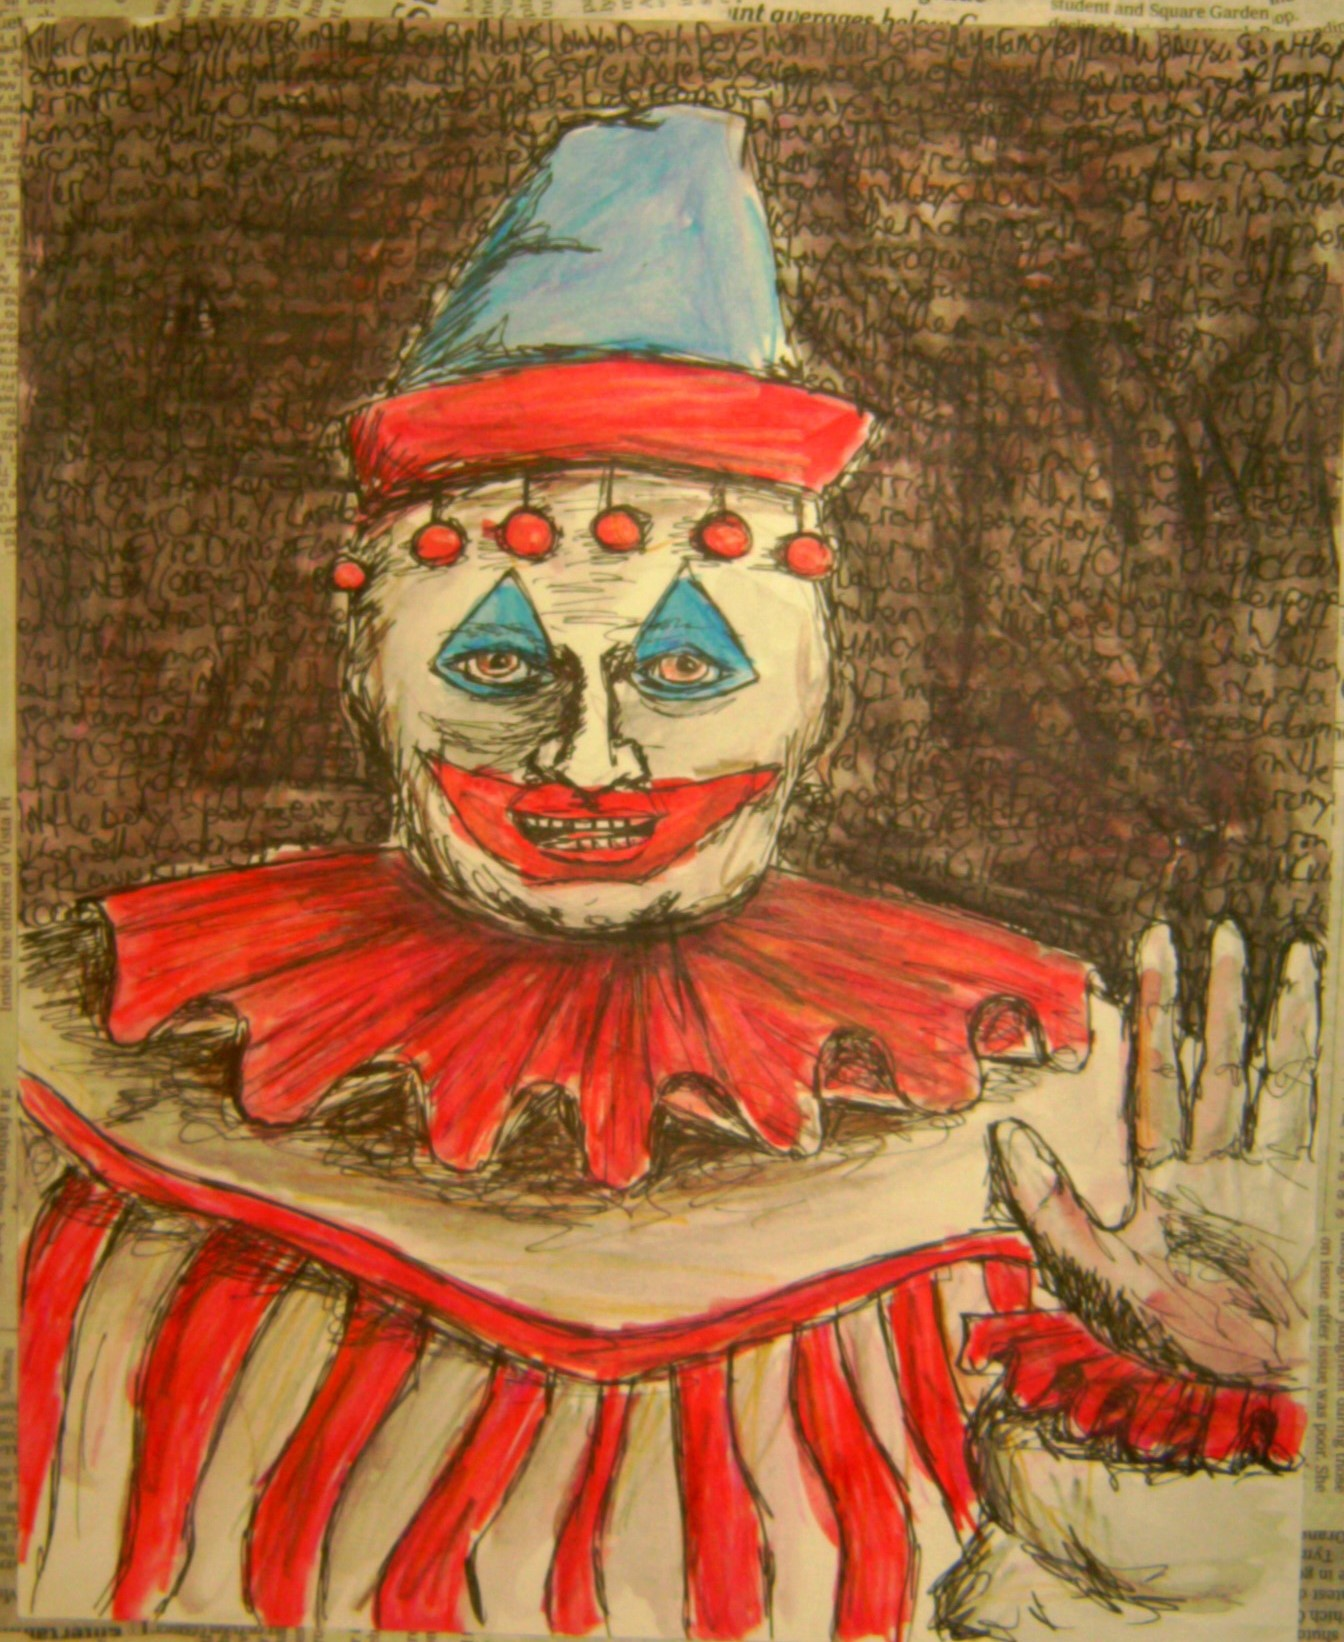 John Wayne Gacy, the Killer Clown - Photo